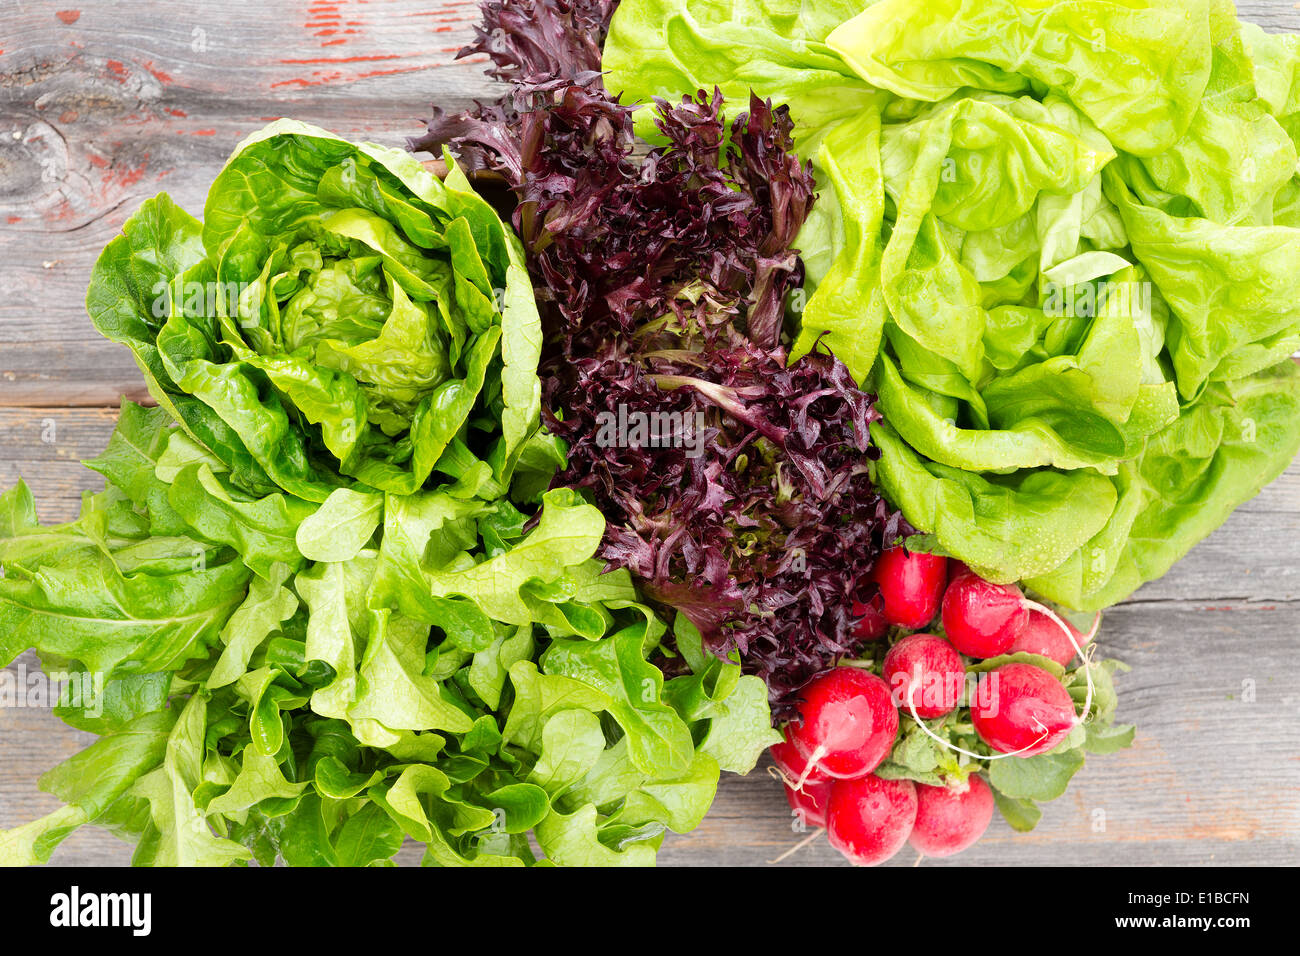 Overhead view of heads of assorted leafy fresh lettuce with a bunch of crisp red radishes arranged on old rustic wooden boards i - Stock Image